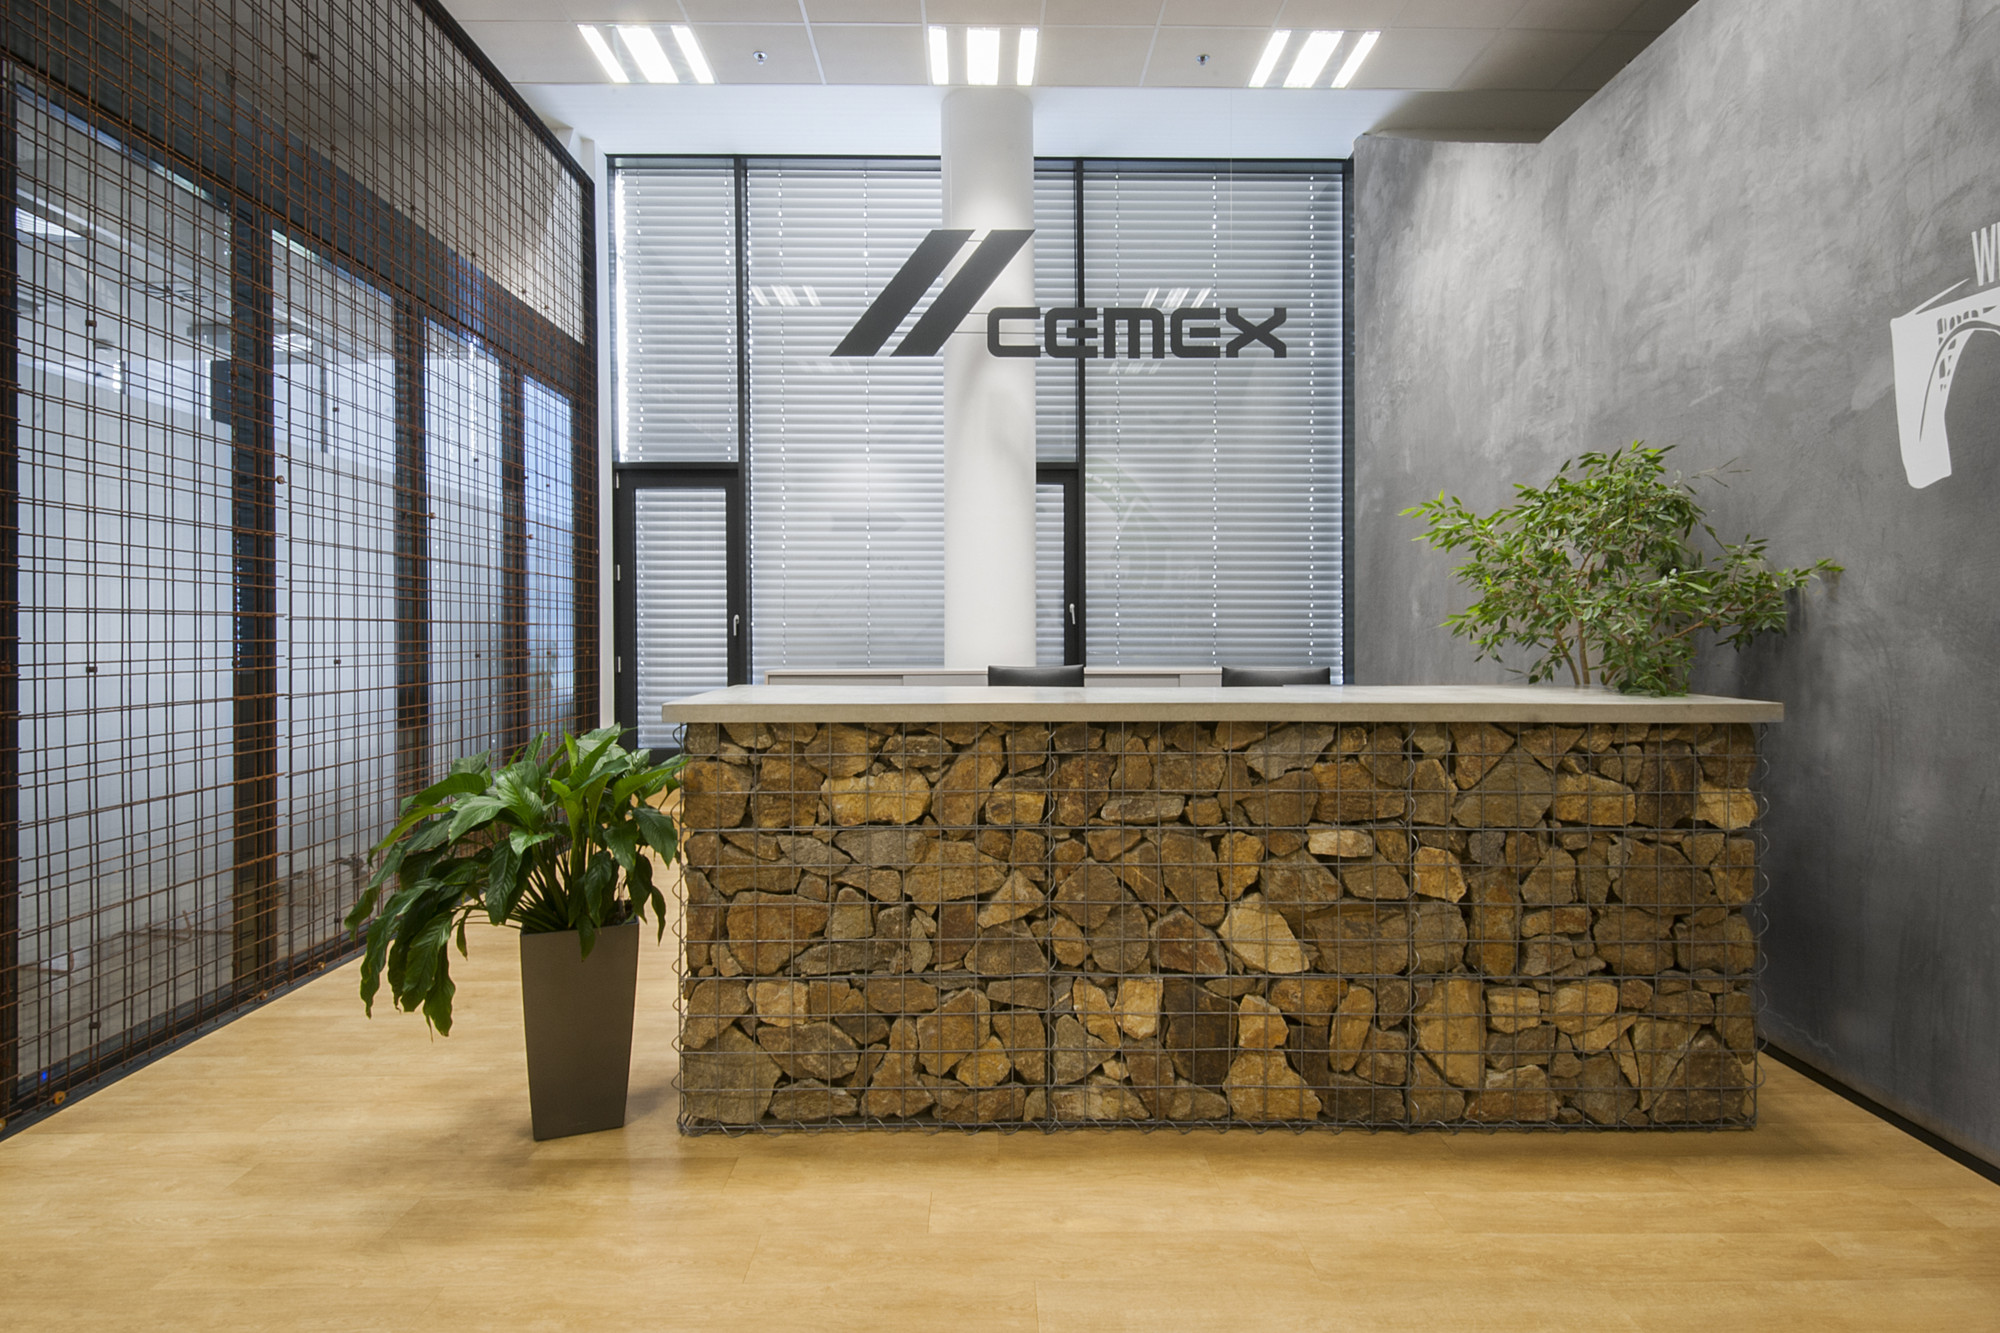 New Cemex Headquarters / Atelier Povetron, Courtesy of Atelier Povetron